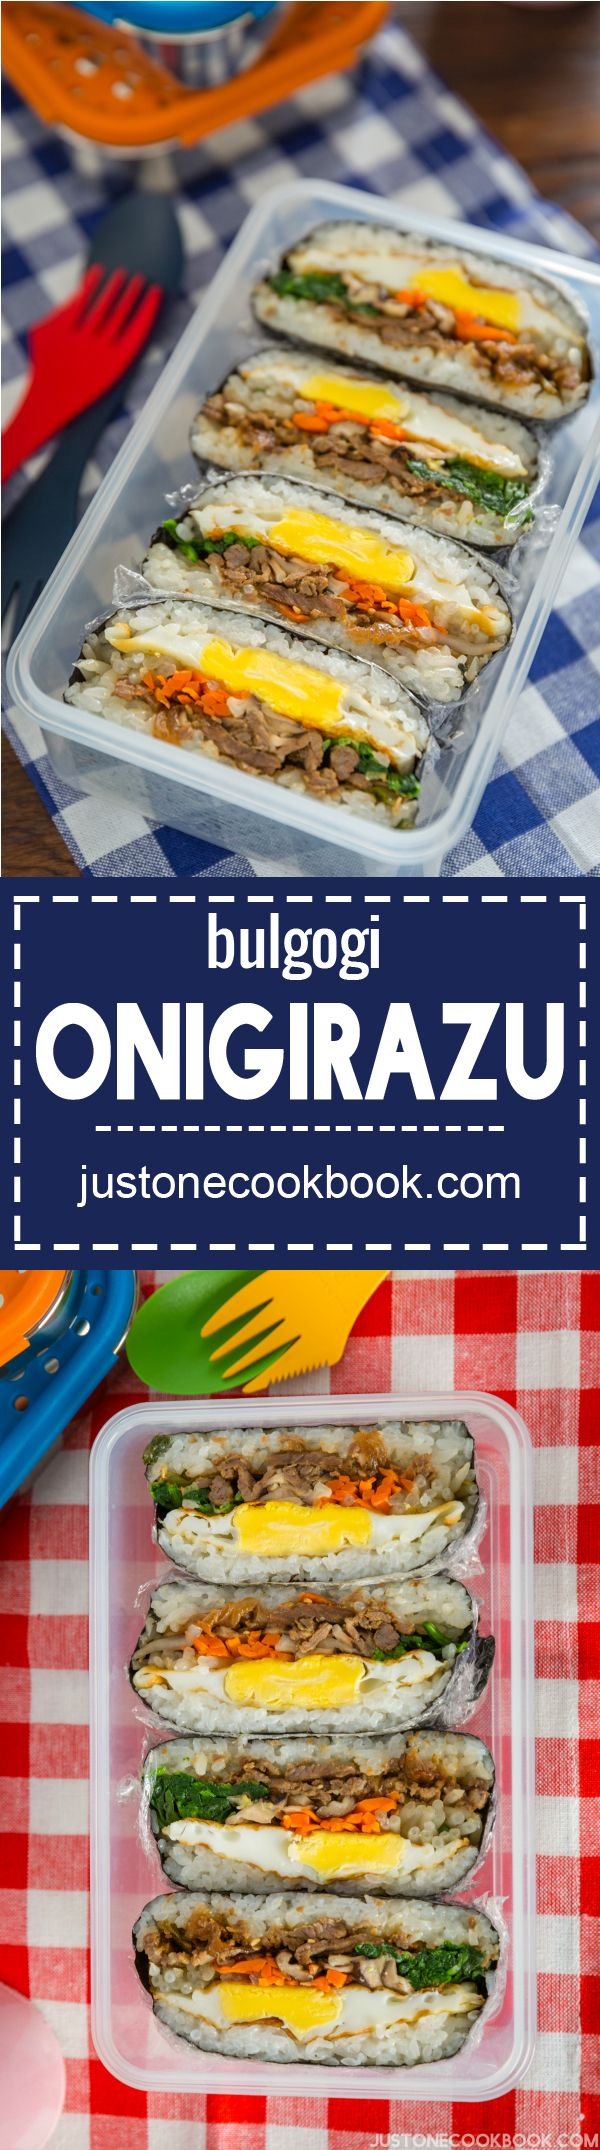 781 best japanese recipes images on pinterest japanese cuisine bulgogi onigirazu bento recipeskorean food recipescooking recipesrice sandwicheasy japanese forumfinder Images